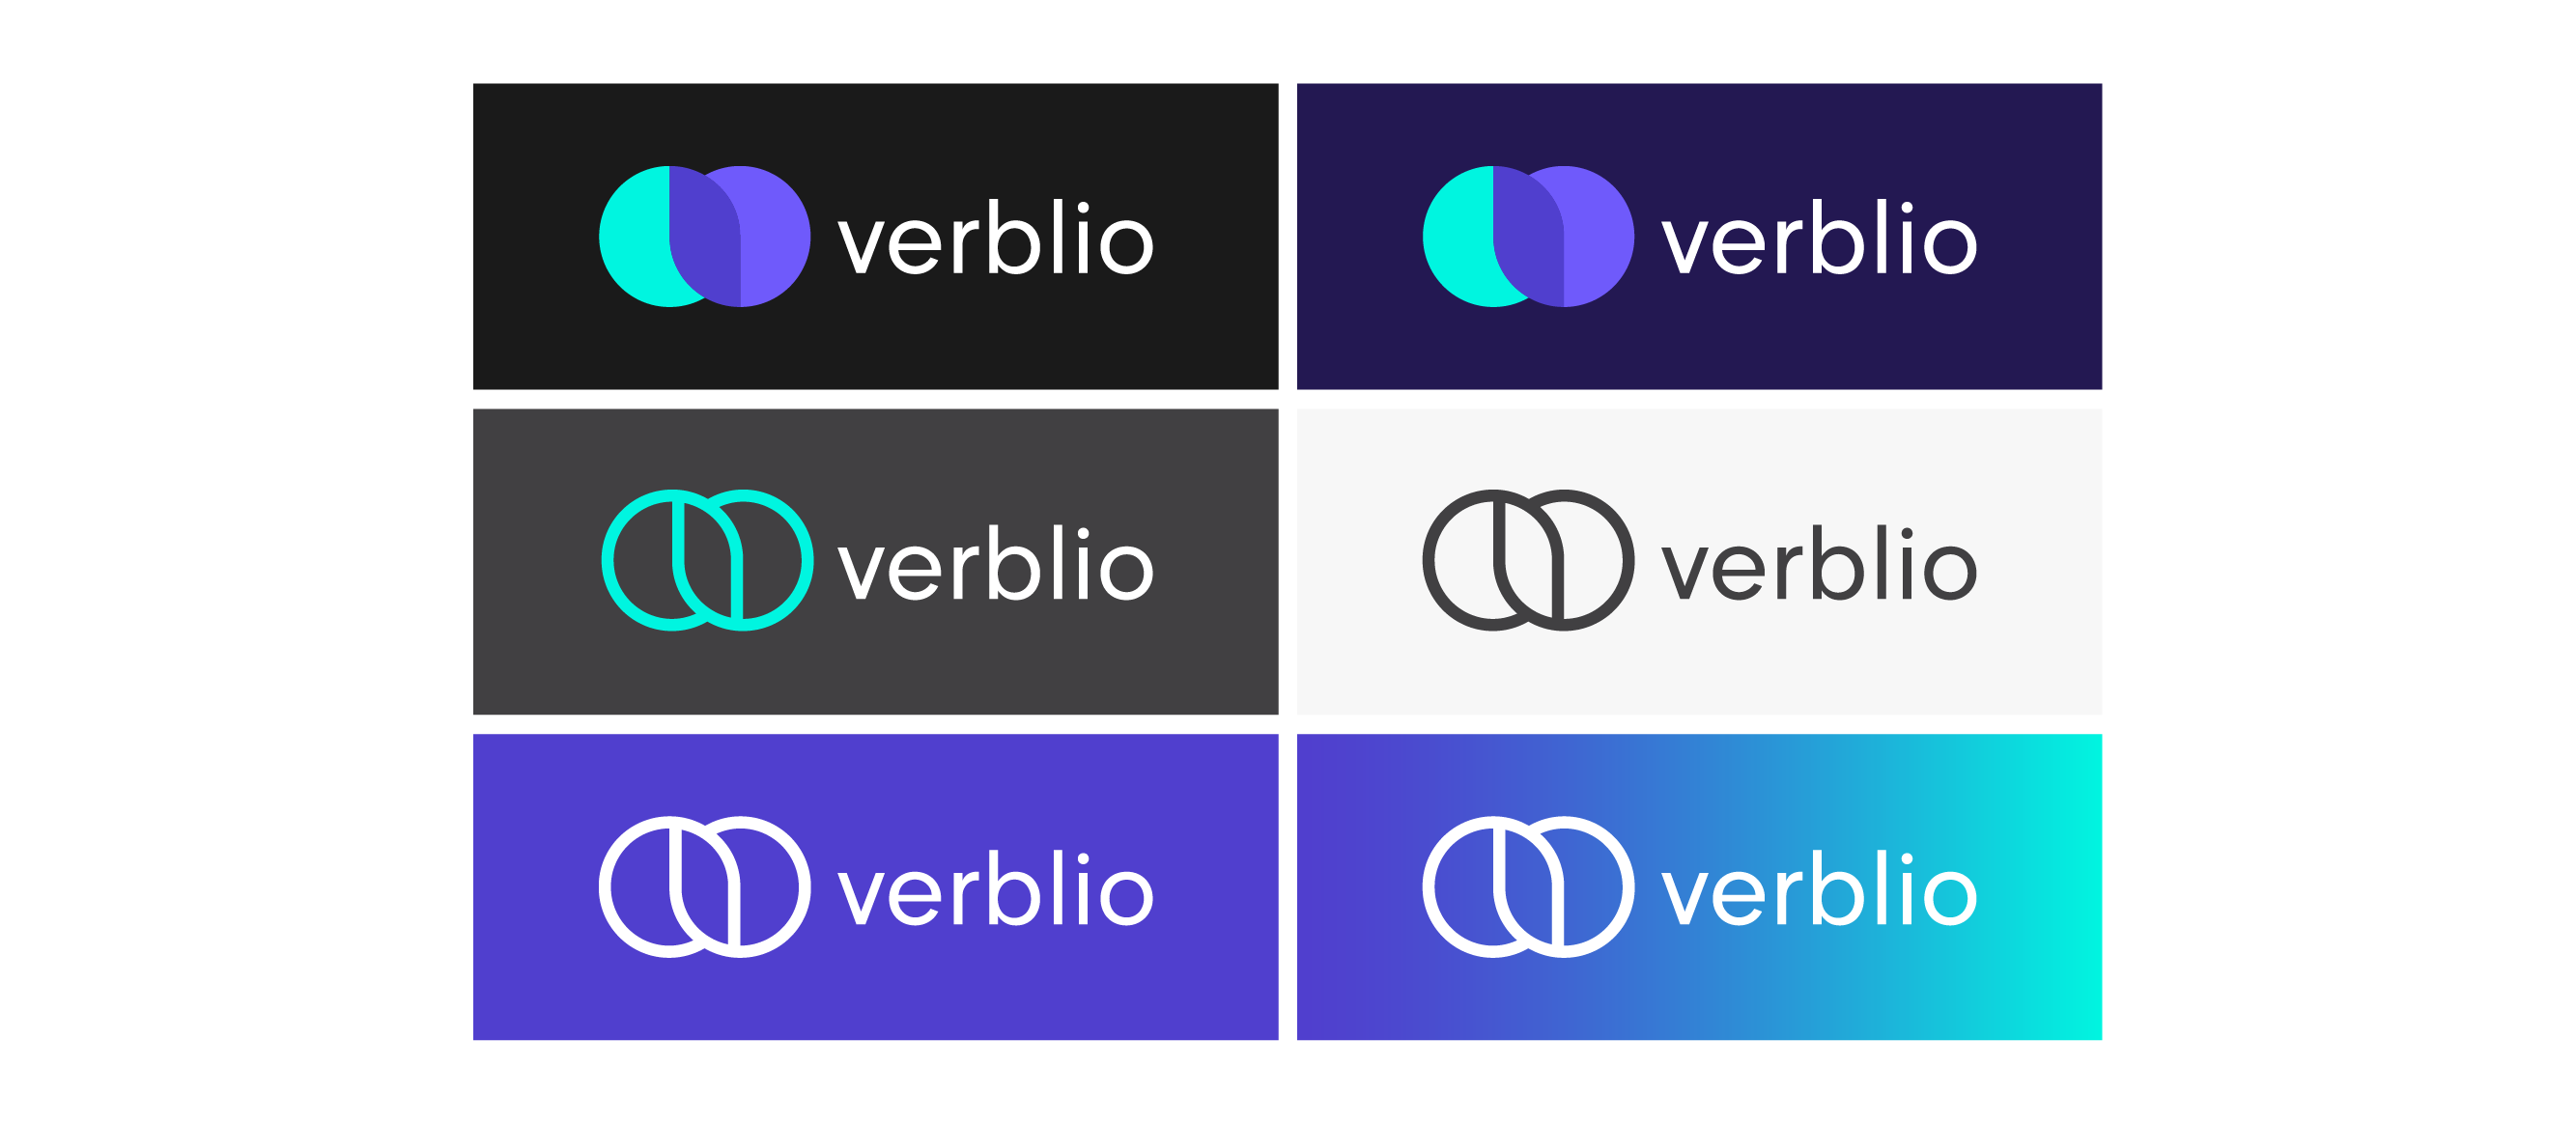 image of verblio 4 color and single color logo versions designed by lulofs